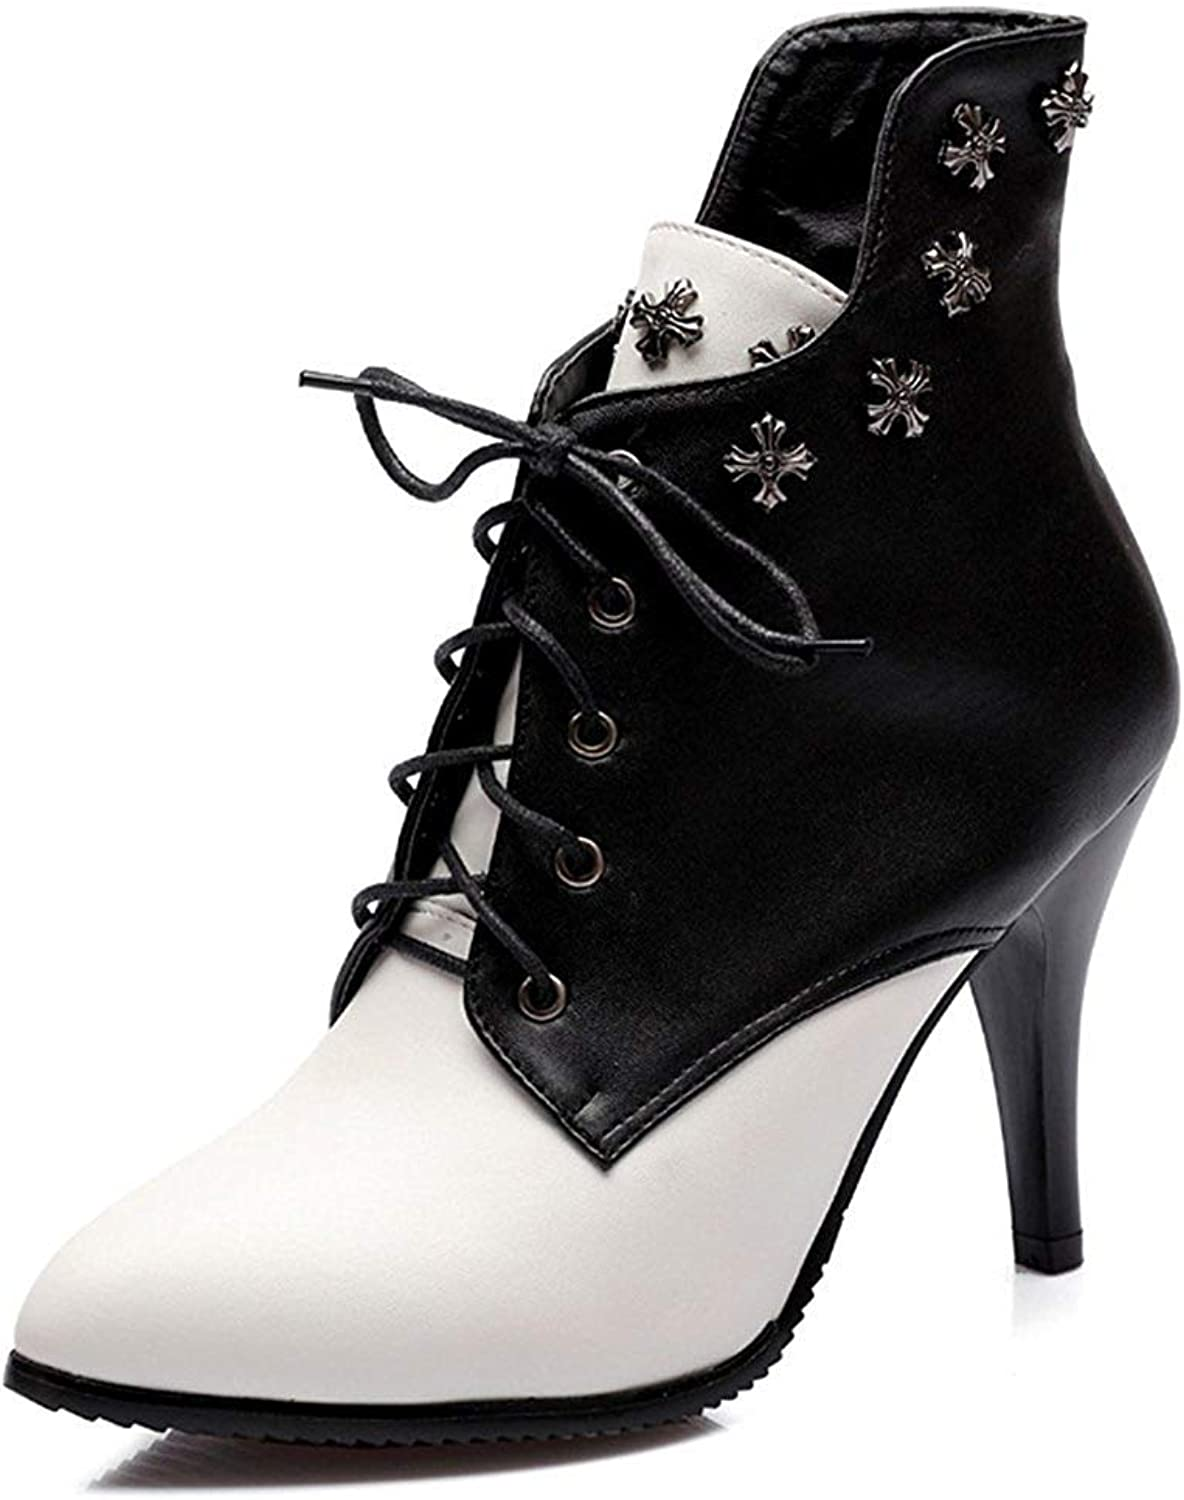 Unm Women's Studded Pointed Toe Short Boots - High Heel Ankle Booties - Sexy Lace up Stilettos